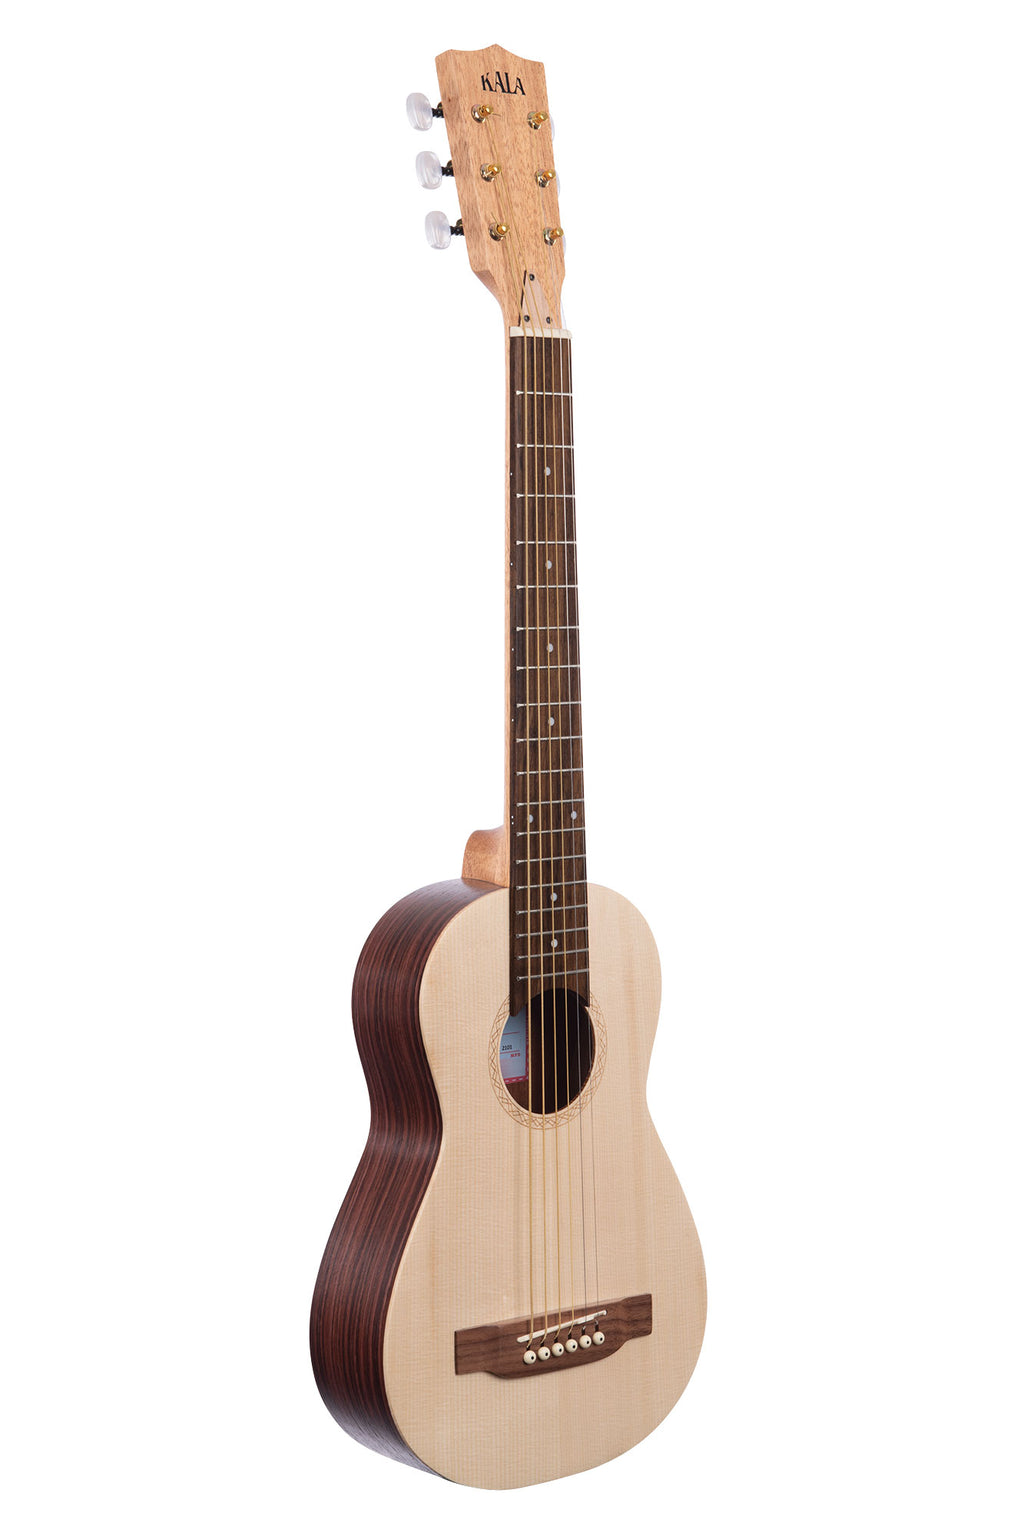 Solid Spruce Top Travel Guitar with Steel Strings